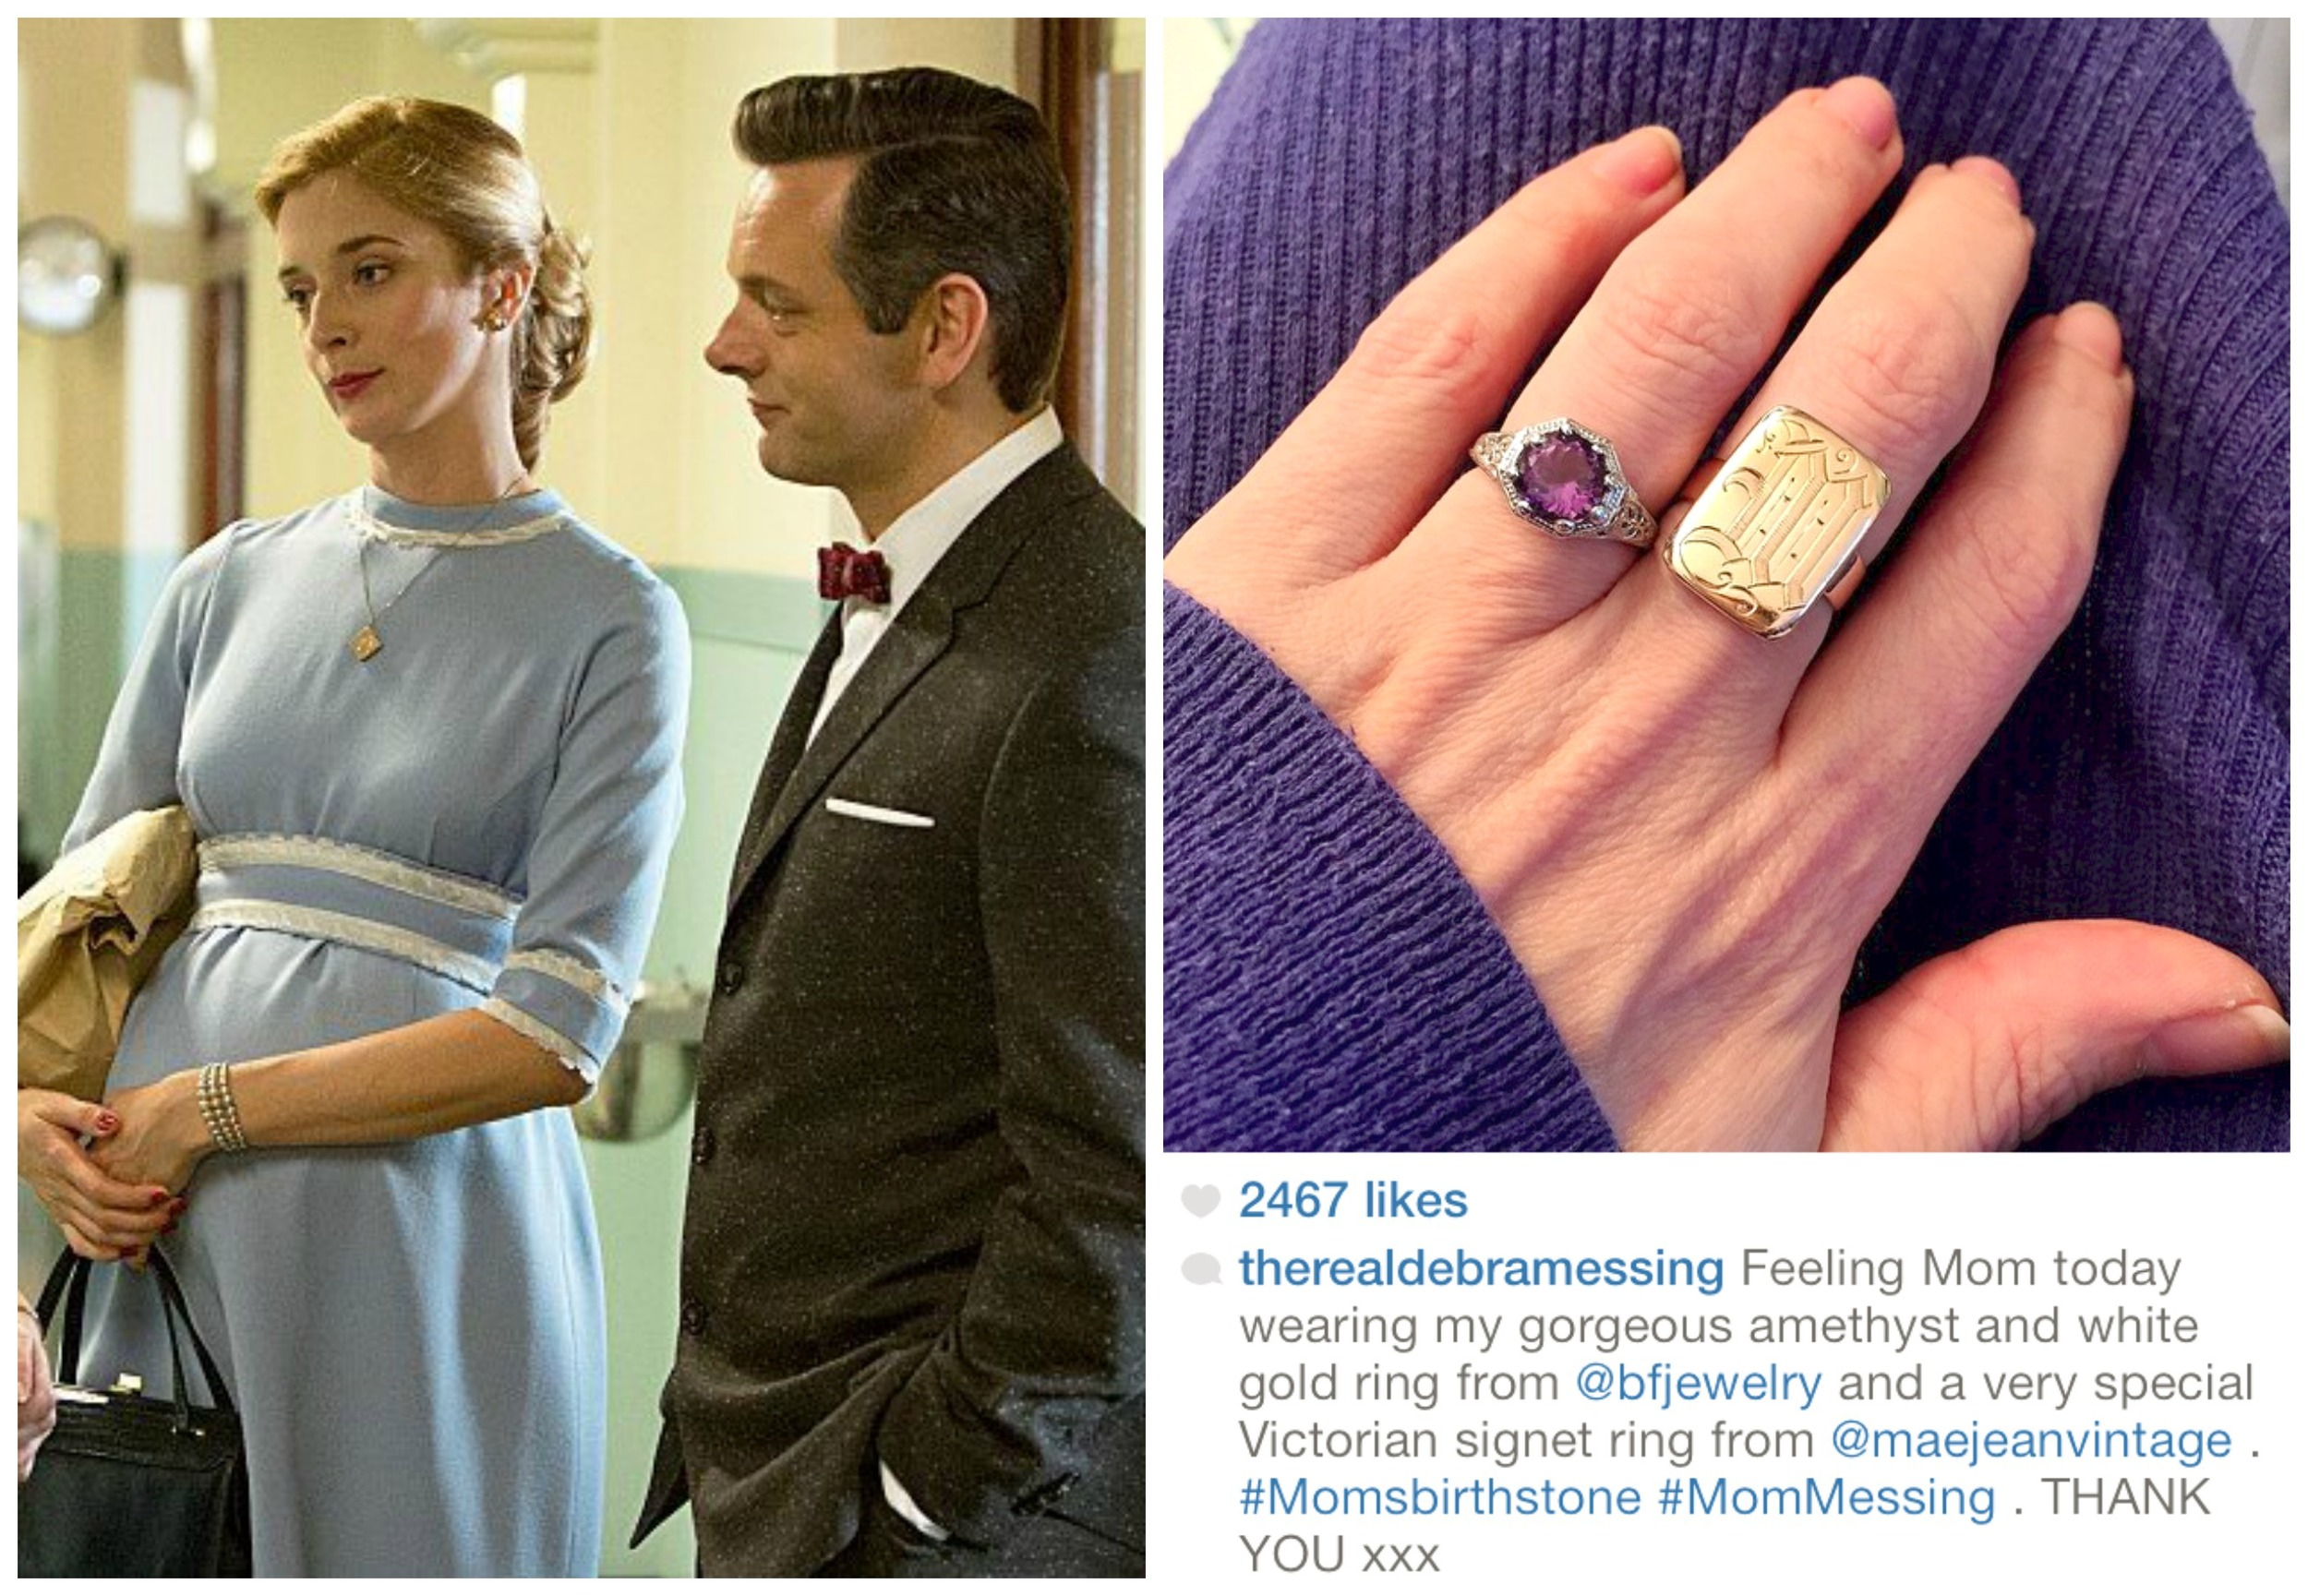 (Left photo)     Actress Caitlin FitzGerald as Libby from the Showtime series Masters of Sex wearing an antique locket   from MJV. (Right photo) Actress Debra Messing famous from her roles in Will and Grace, Mysteries of Laura, and so forth, wearing a Victorian signet ring from our shop.